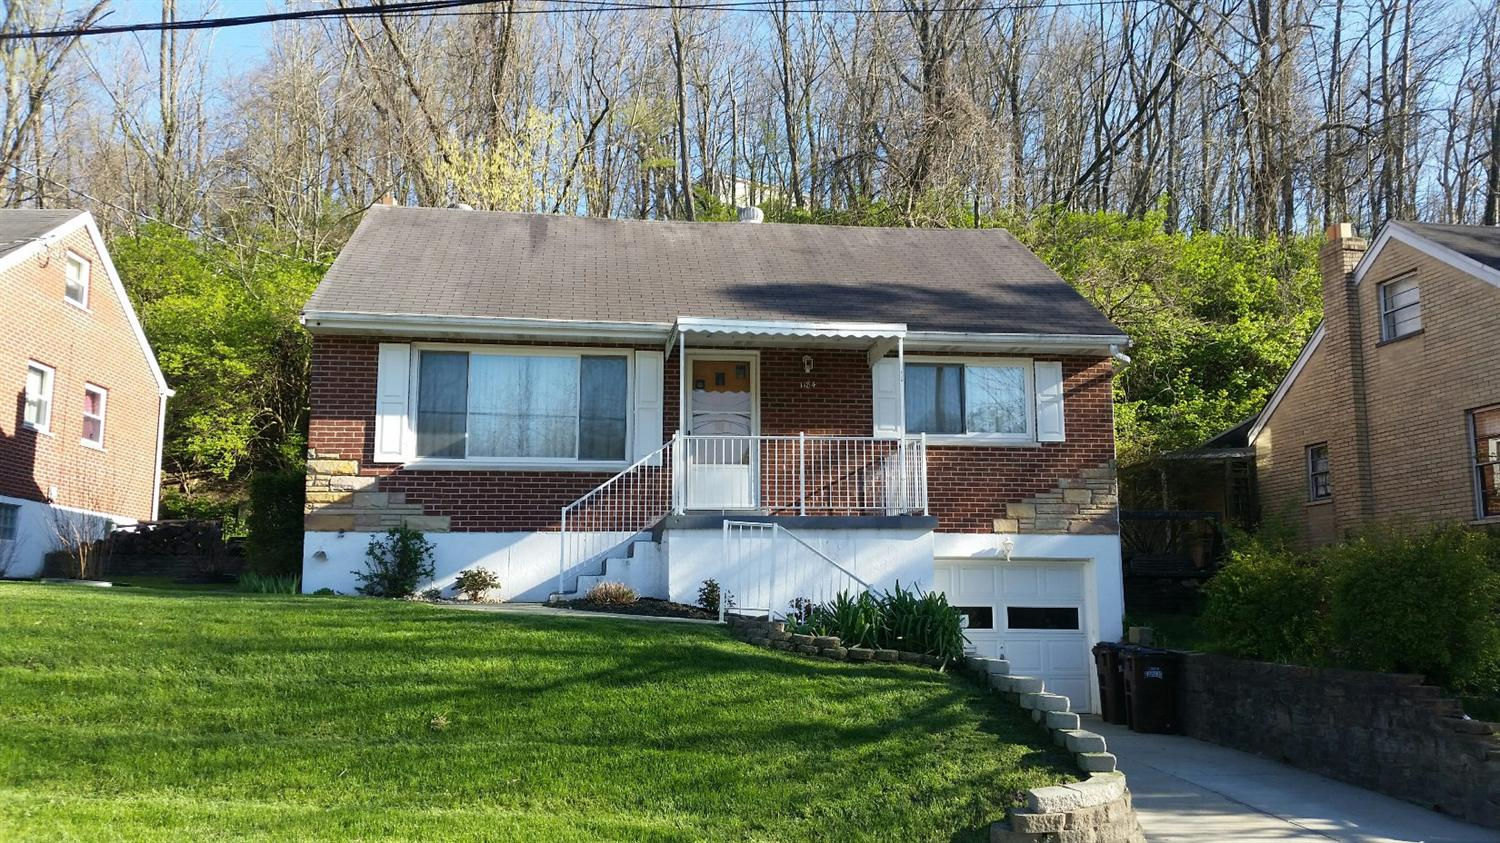 Photo 1 for 1184 Waterworks Rd Newport, KY 41071